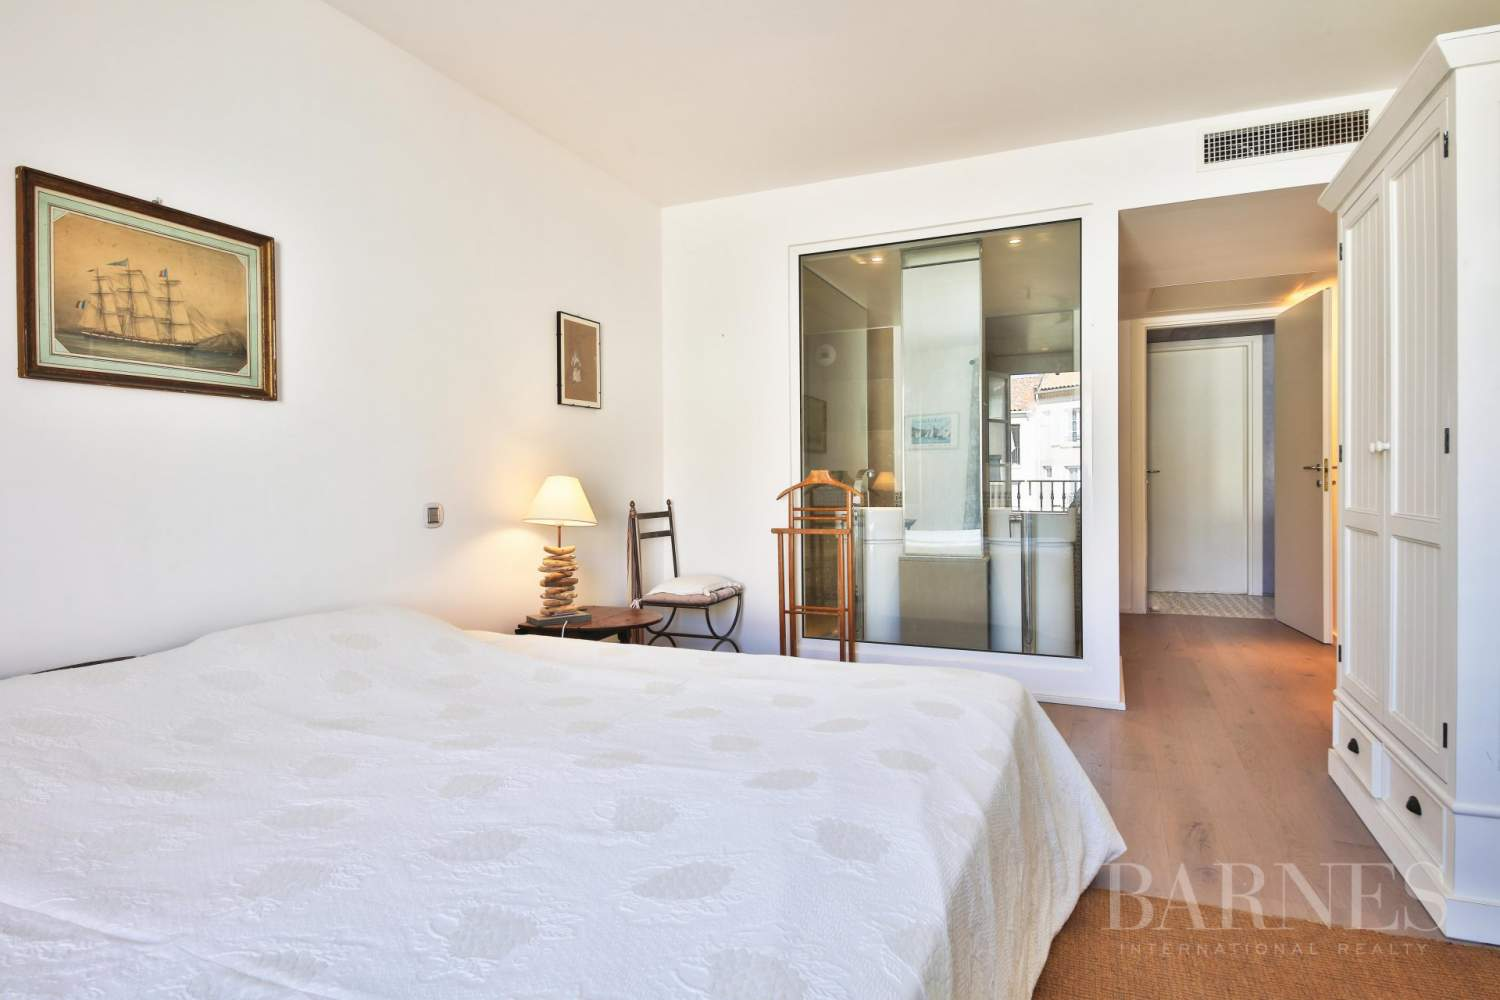 SAINT-TROPEZ - Modern apartment in the heart of village picture 6